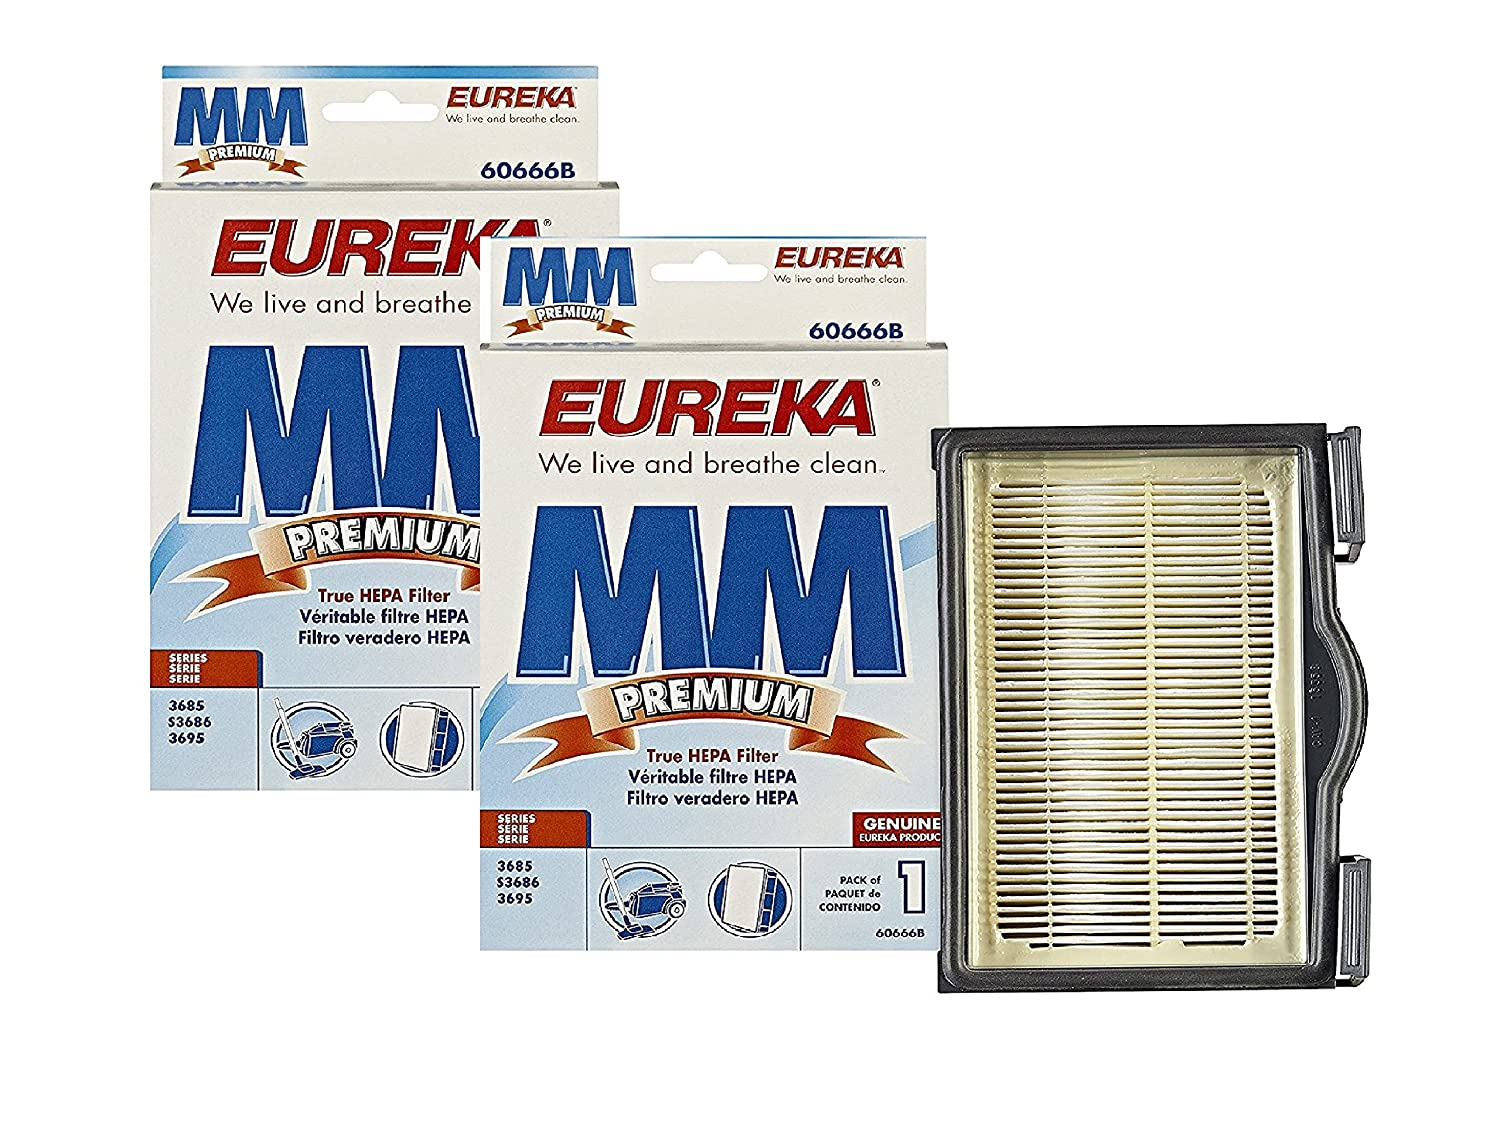 3670G Filter Assembly, pack of 2